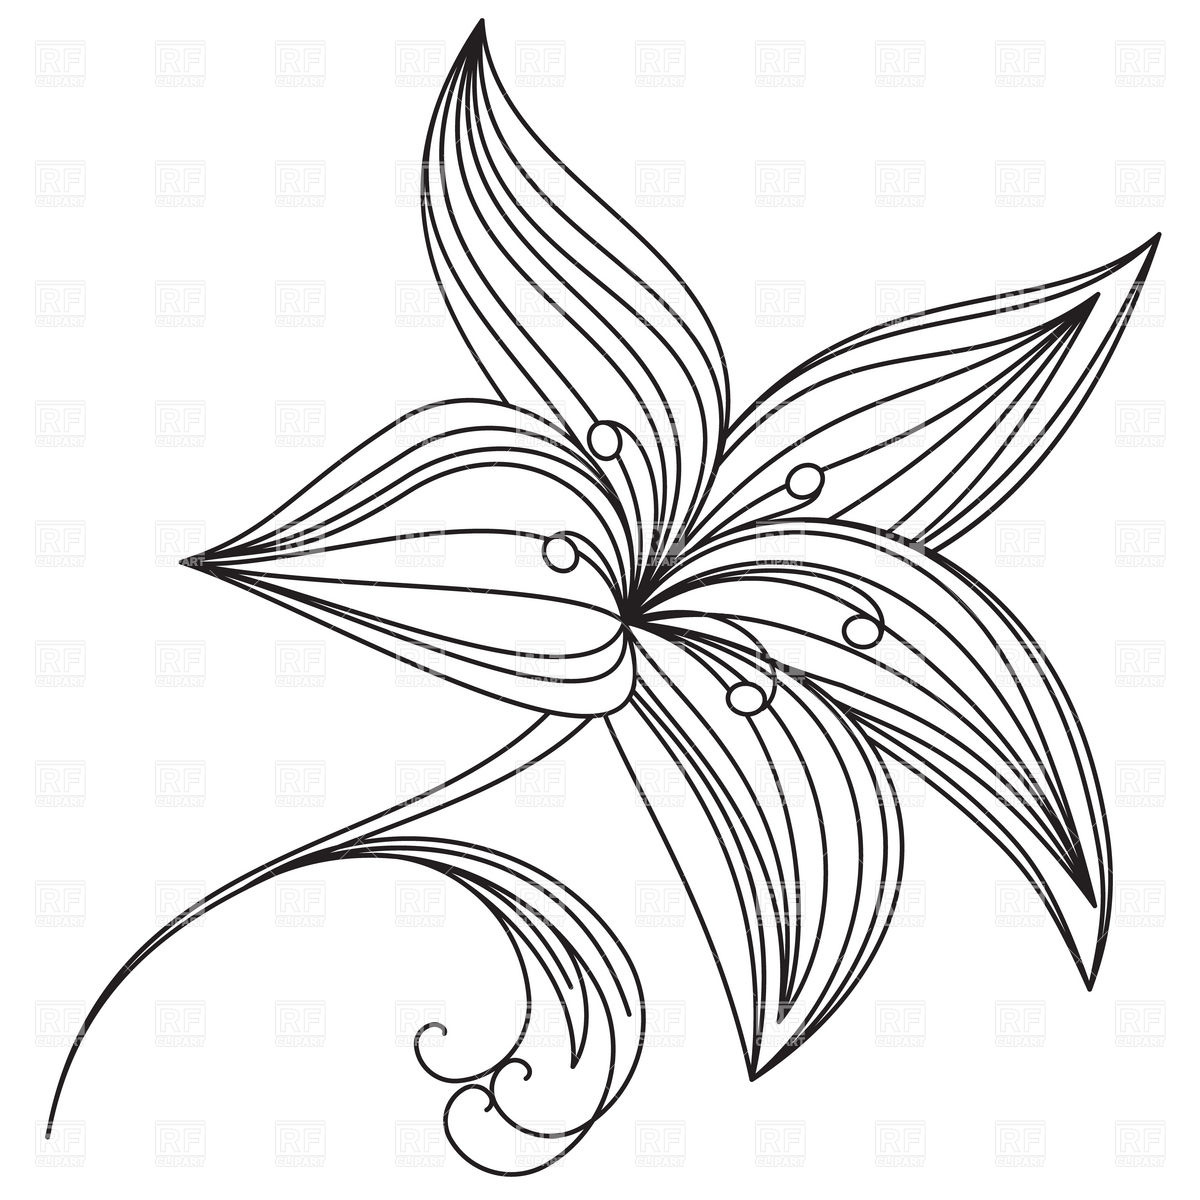 Easy Lily Drawing At Getdrawings Com Free For Personal Use Easy